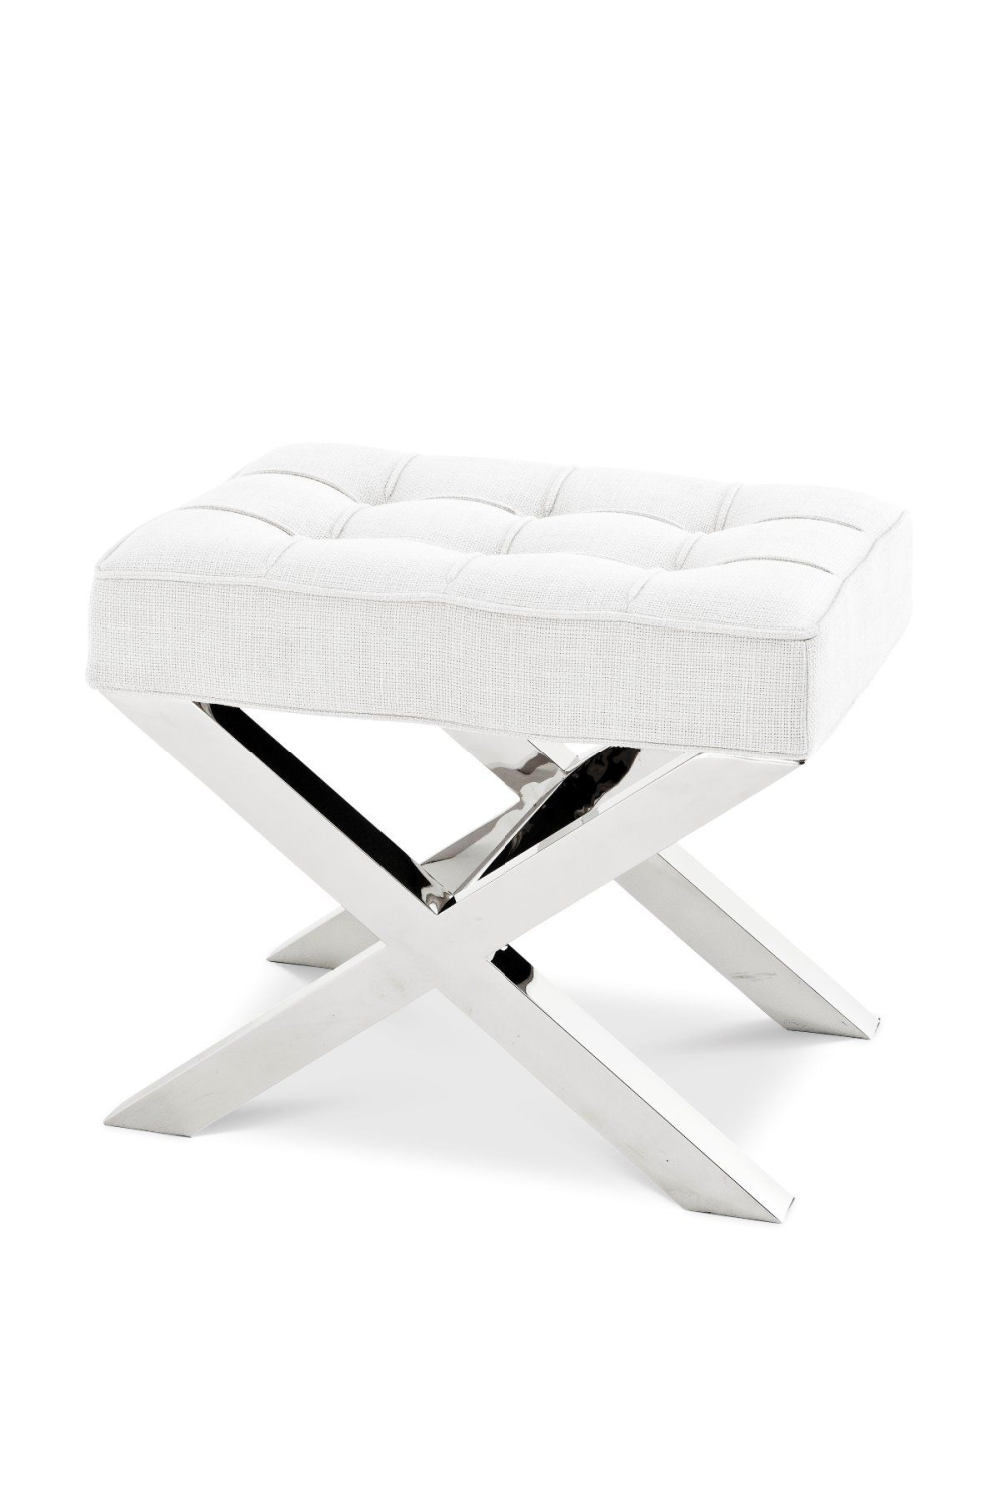 Off White X-Legged Stool | Eichholtz Beekman